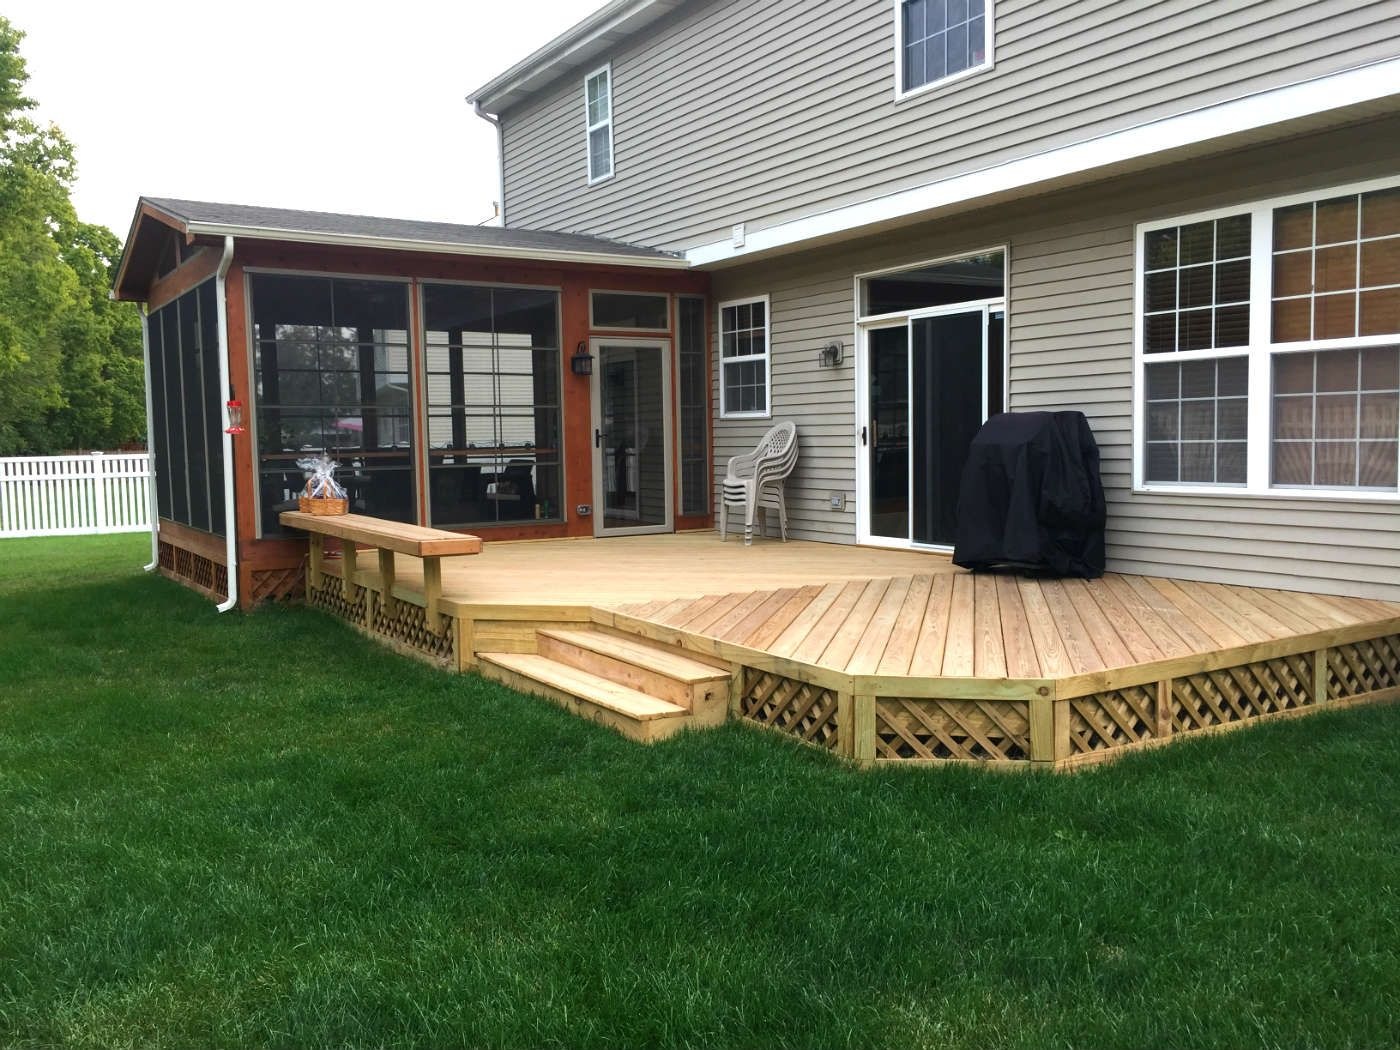 This Screened Porch And Deck Combination Were Custom Designed And Built By New Lenox Il Screened Porch Desig Wood Deck Designs Patio Deck Designs Patio Design